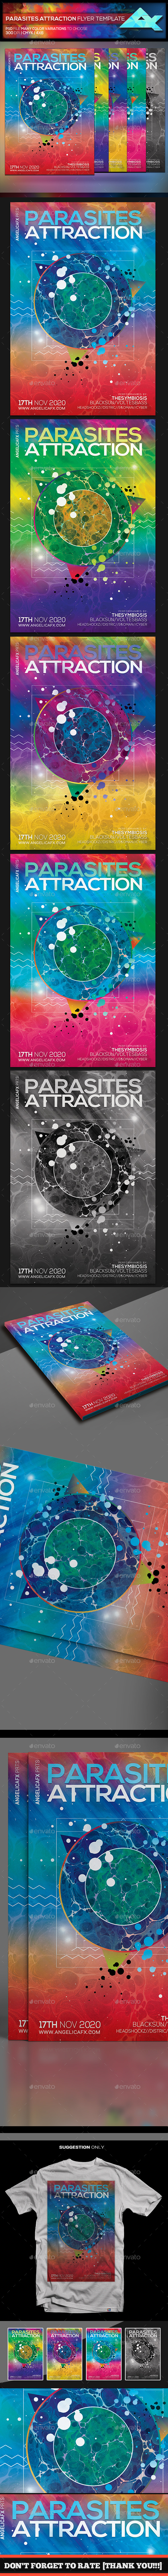 Parasites Attraction Flyer Template - Events Flyers